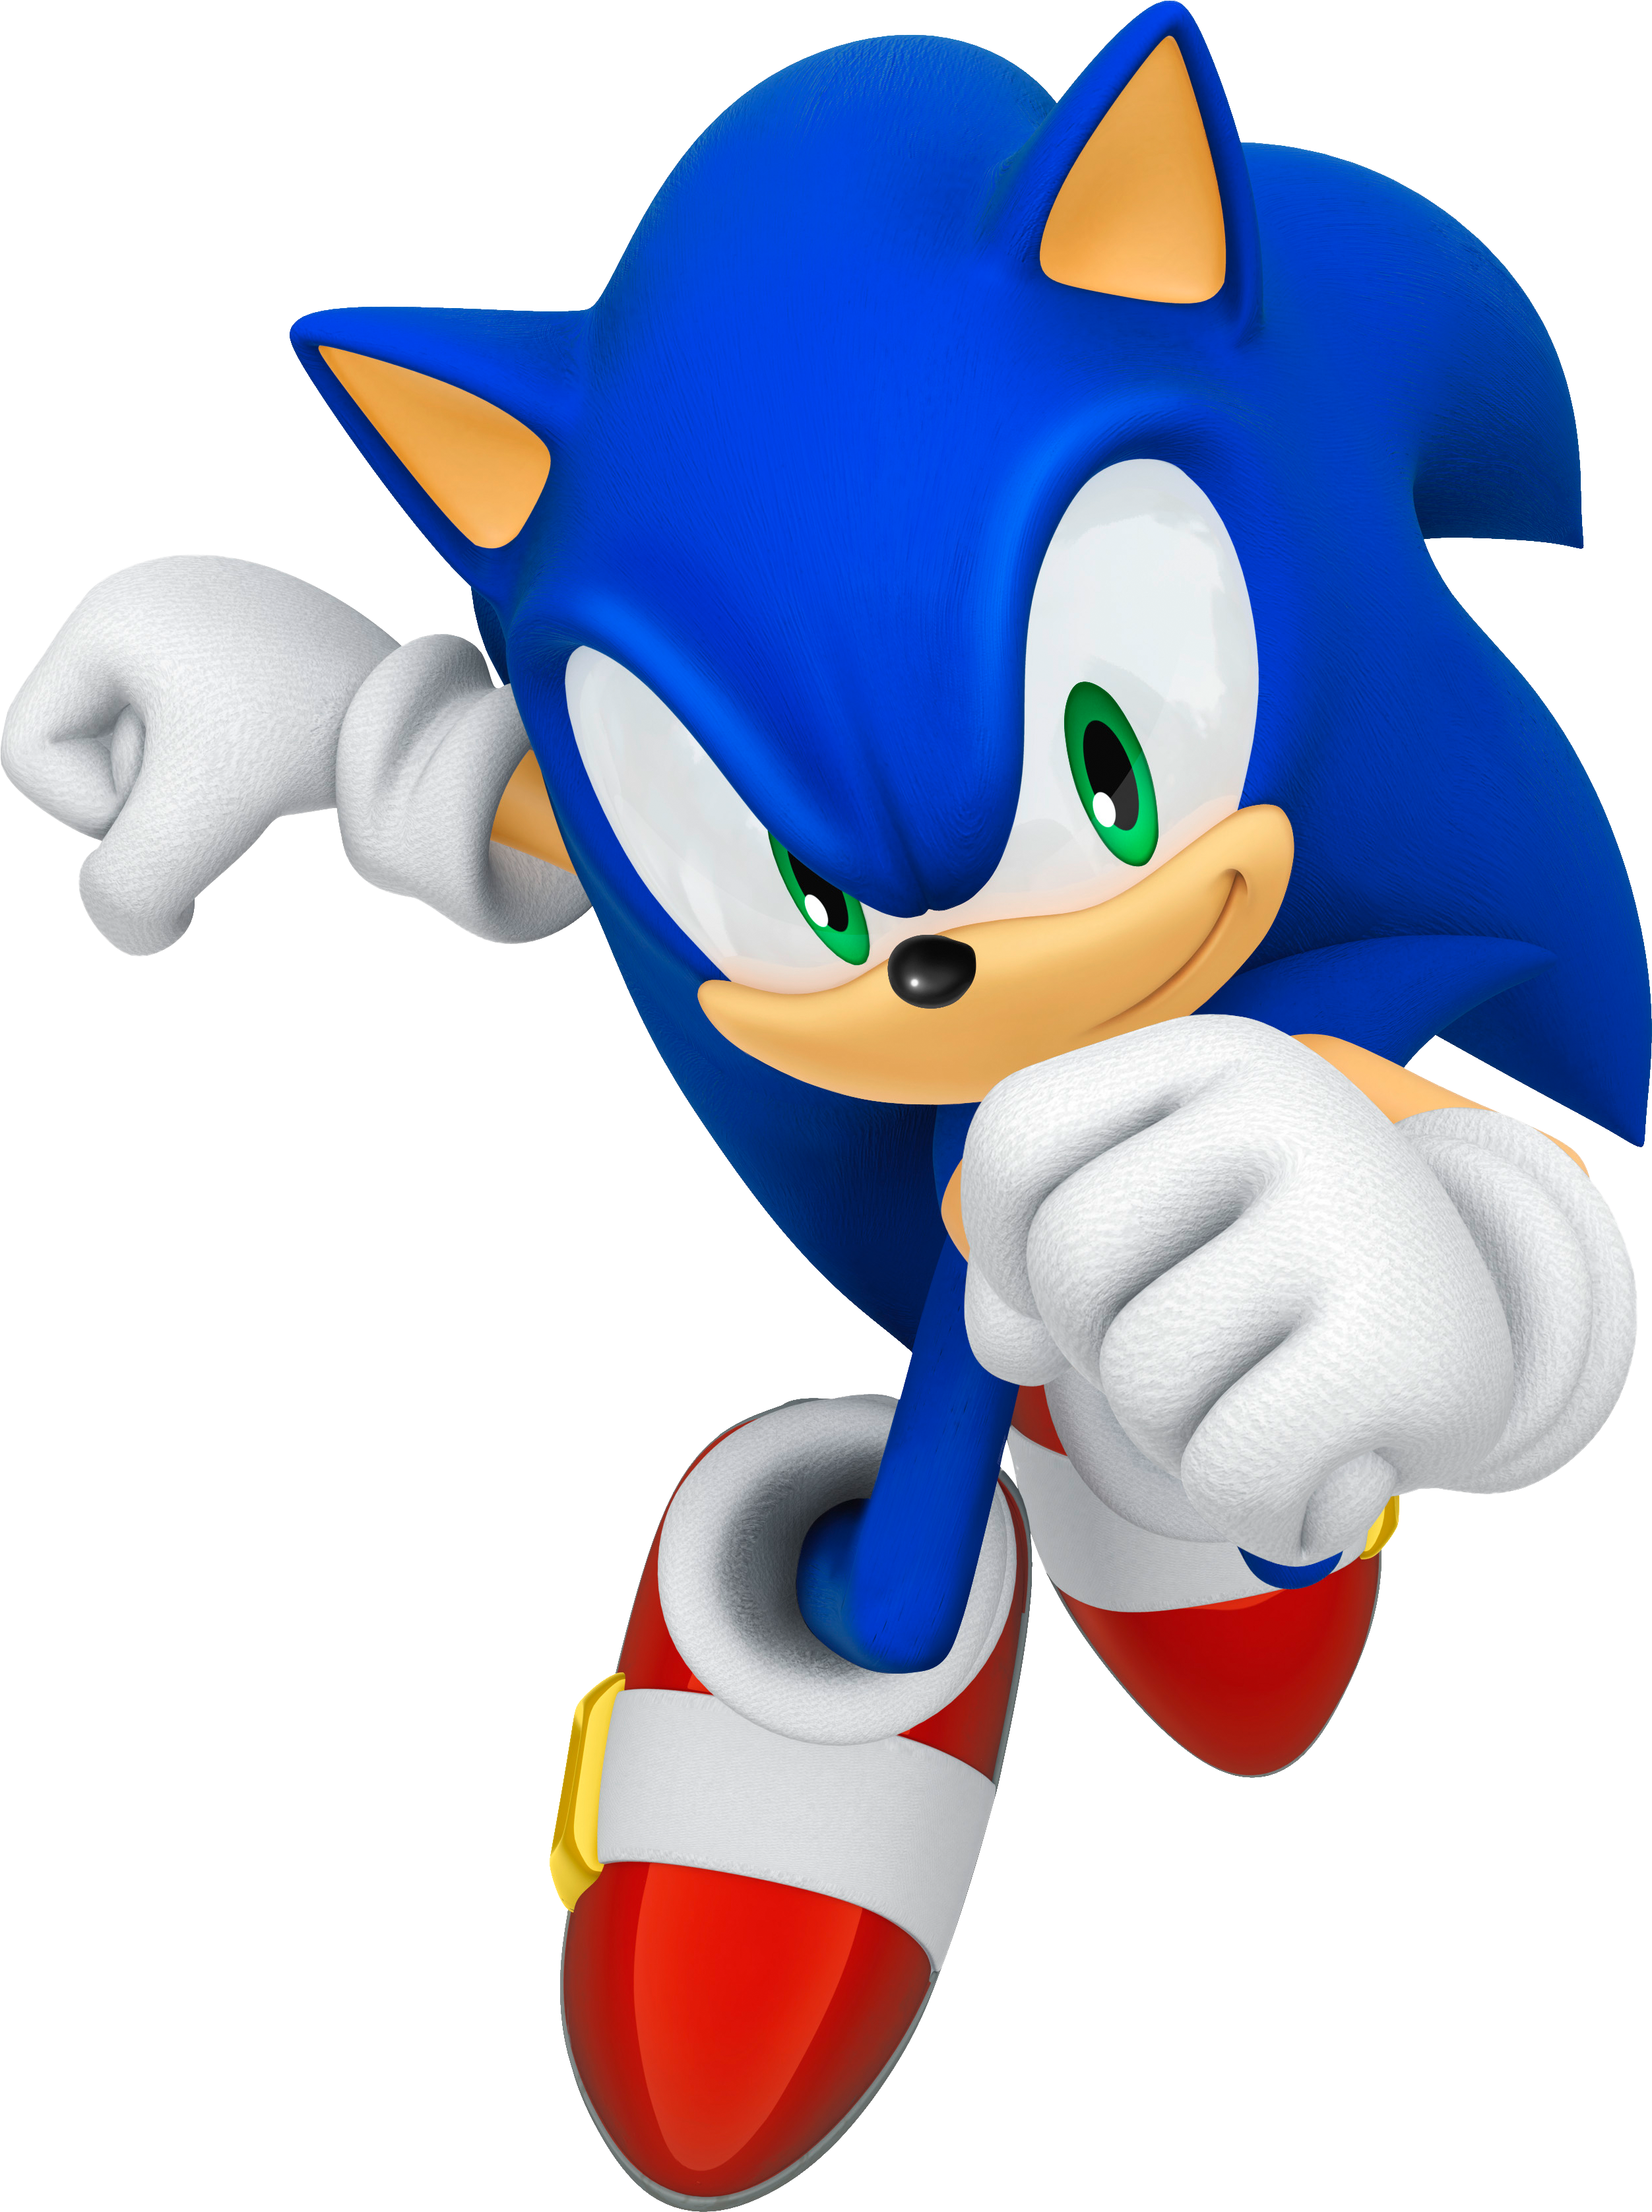 Image - Sonic 144.png - Sonic News Network, the Sonic Wiki